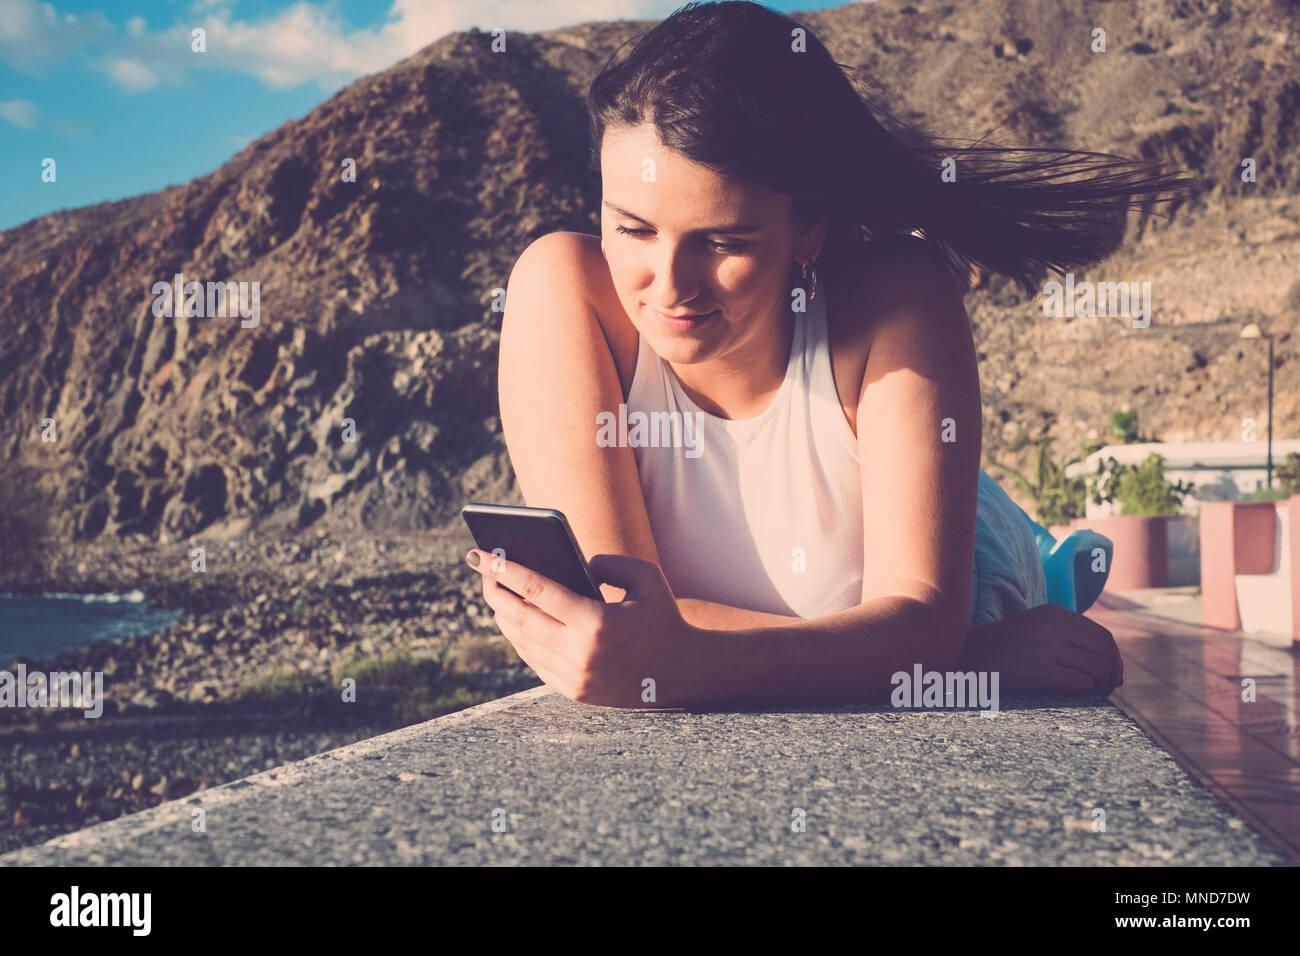 Beautiful long hair spanish woman use mobile phone to send message during a vacation in Tenerife. Lay down on a wall near the beach under a blue sky w - Stock Image